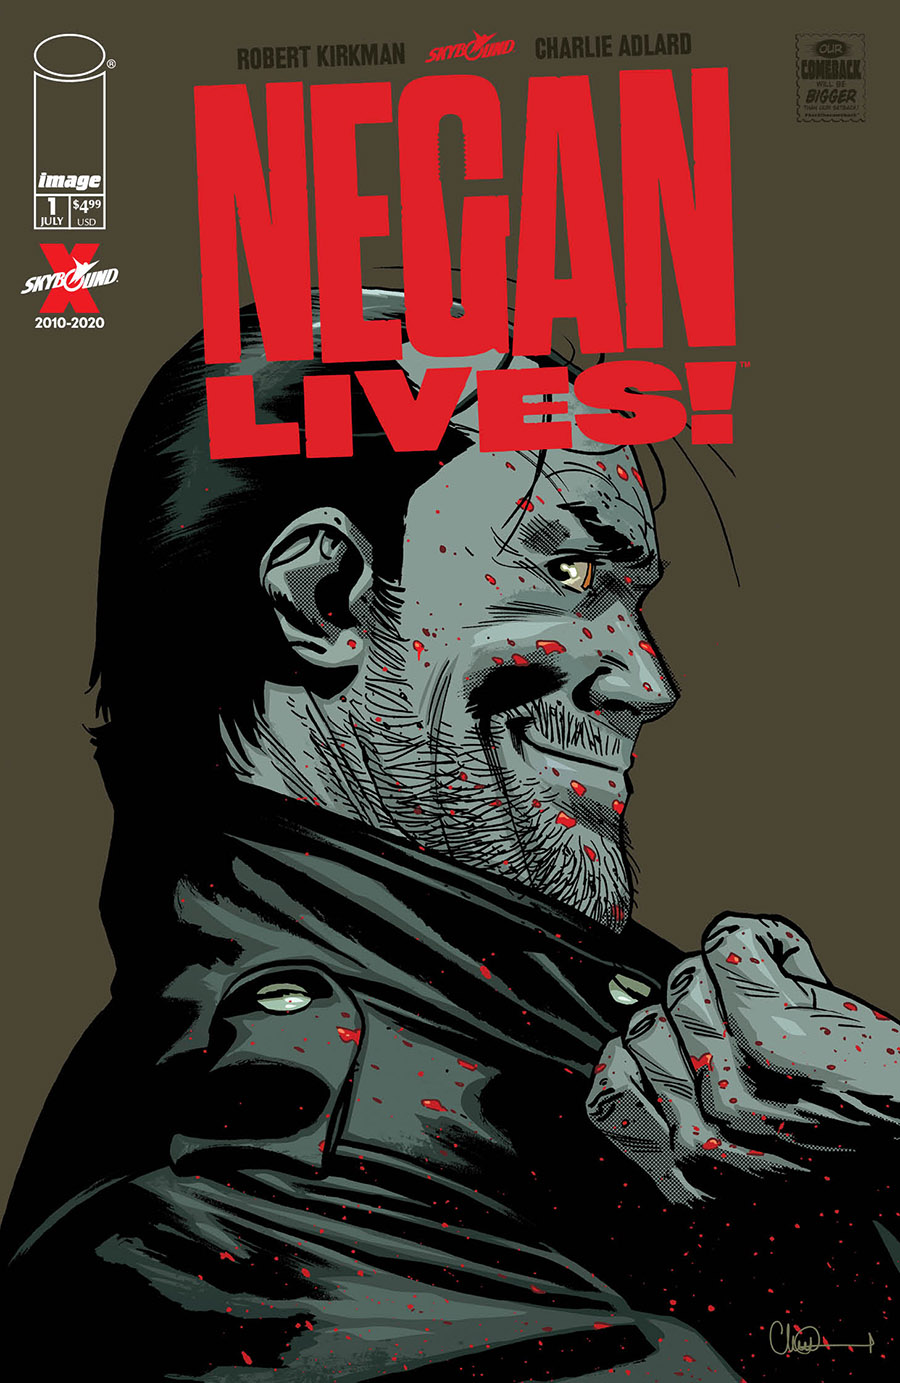 Negan na capa da nova HQ especial de The Walking Dead